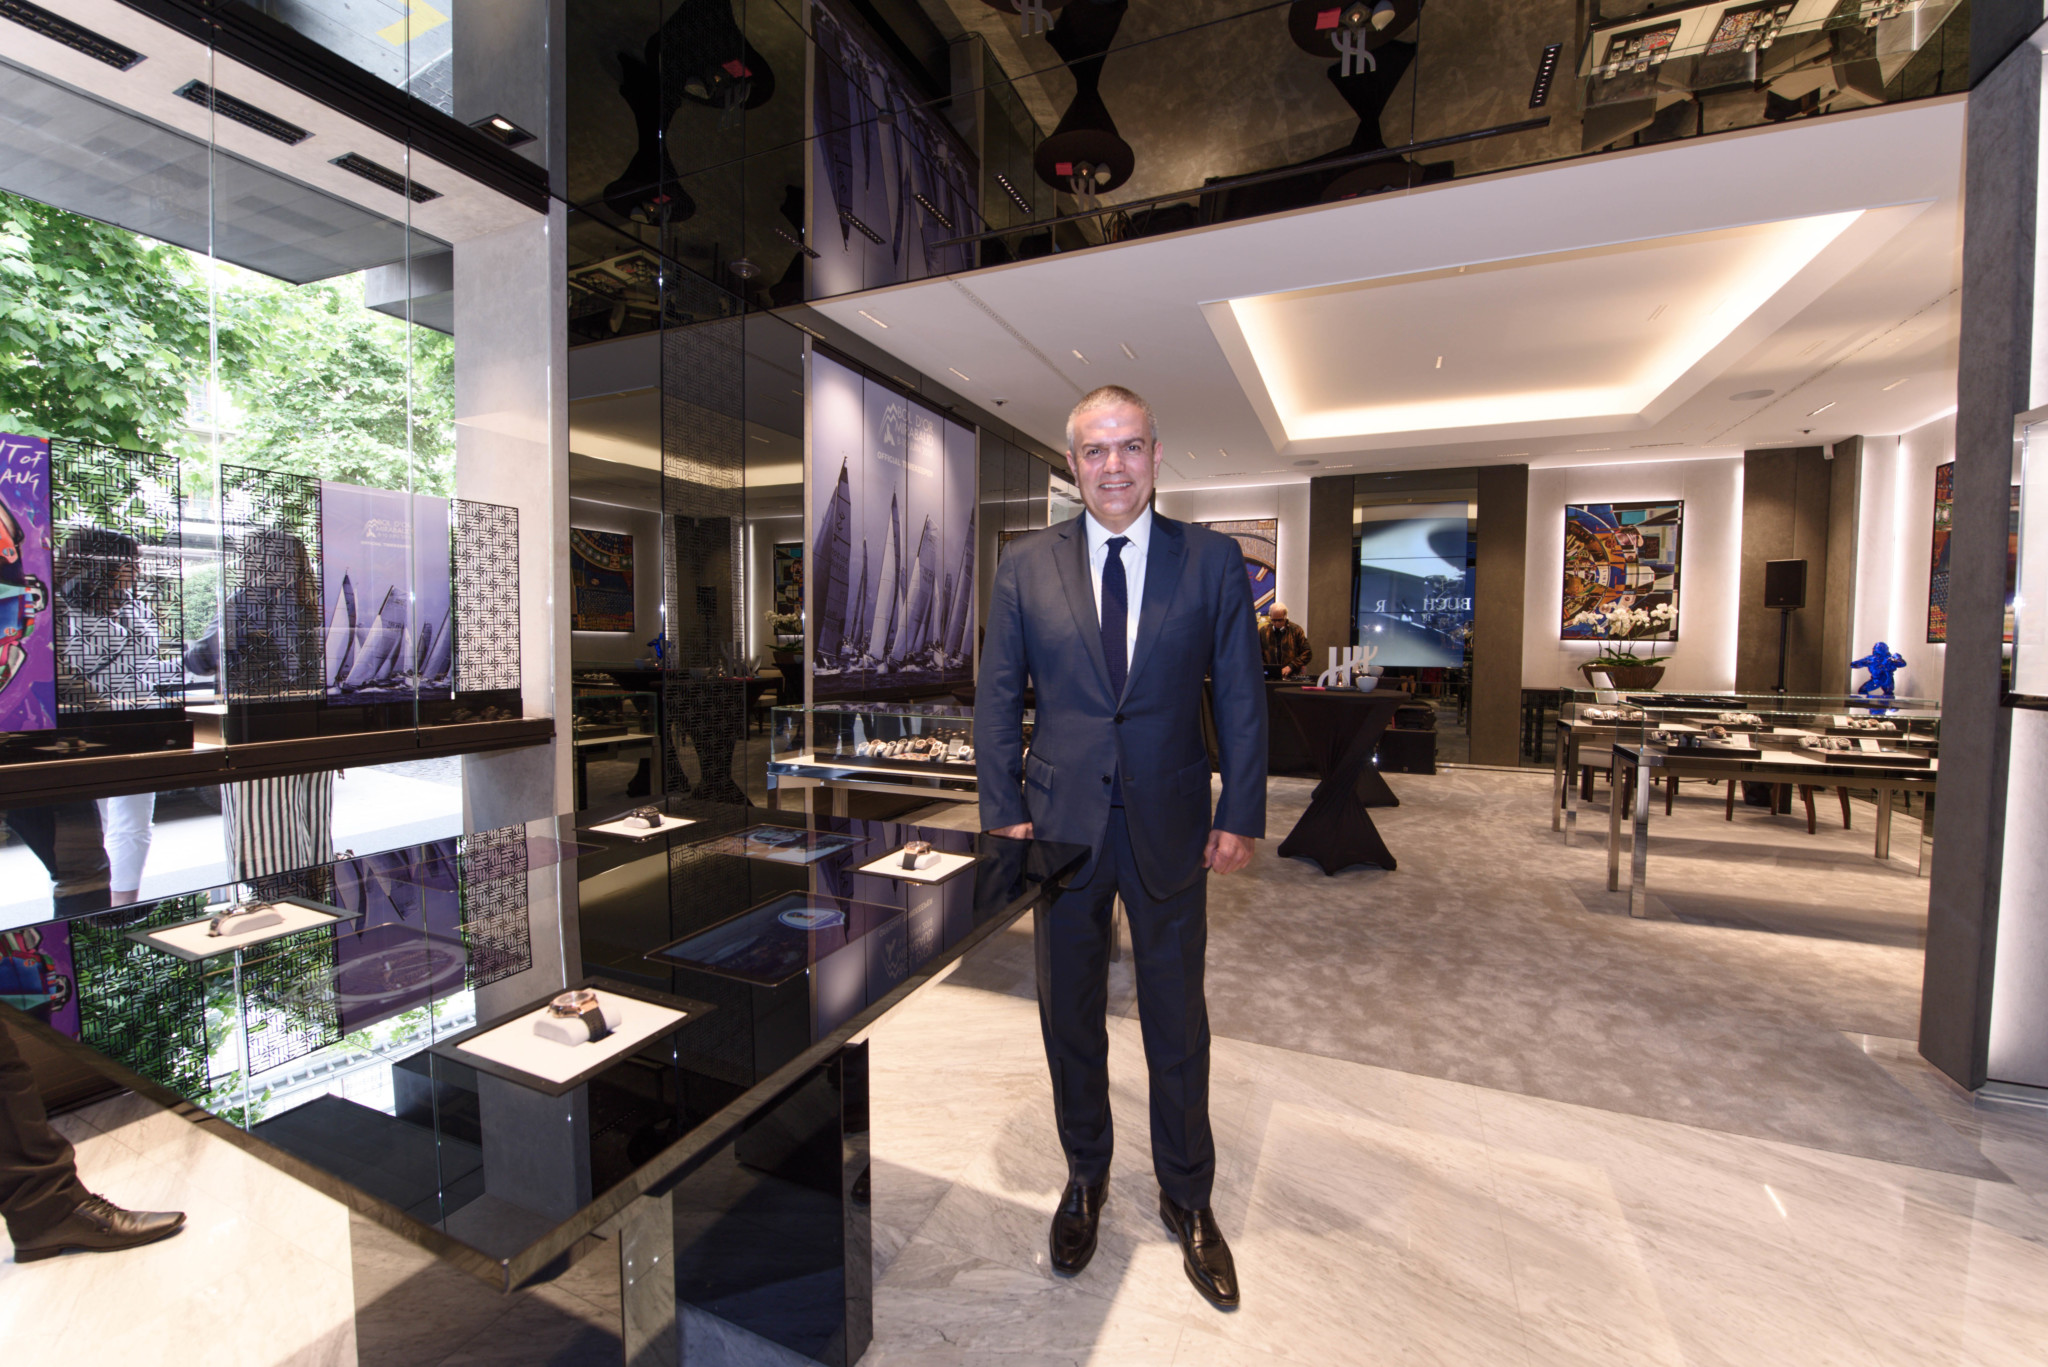 Hublot opens its 90th boutique in the world in home country of Switzerland